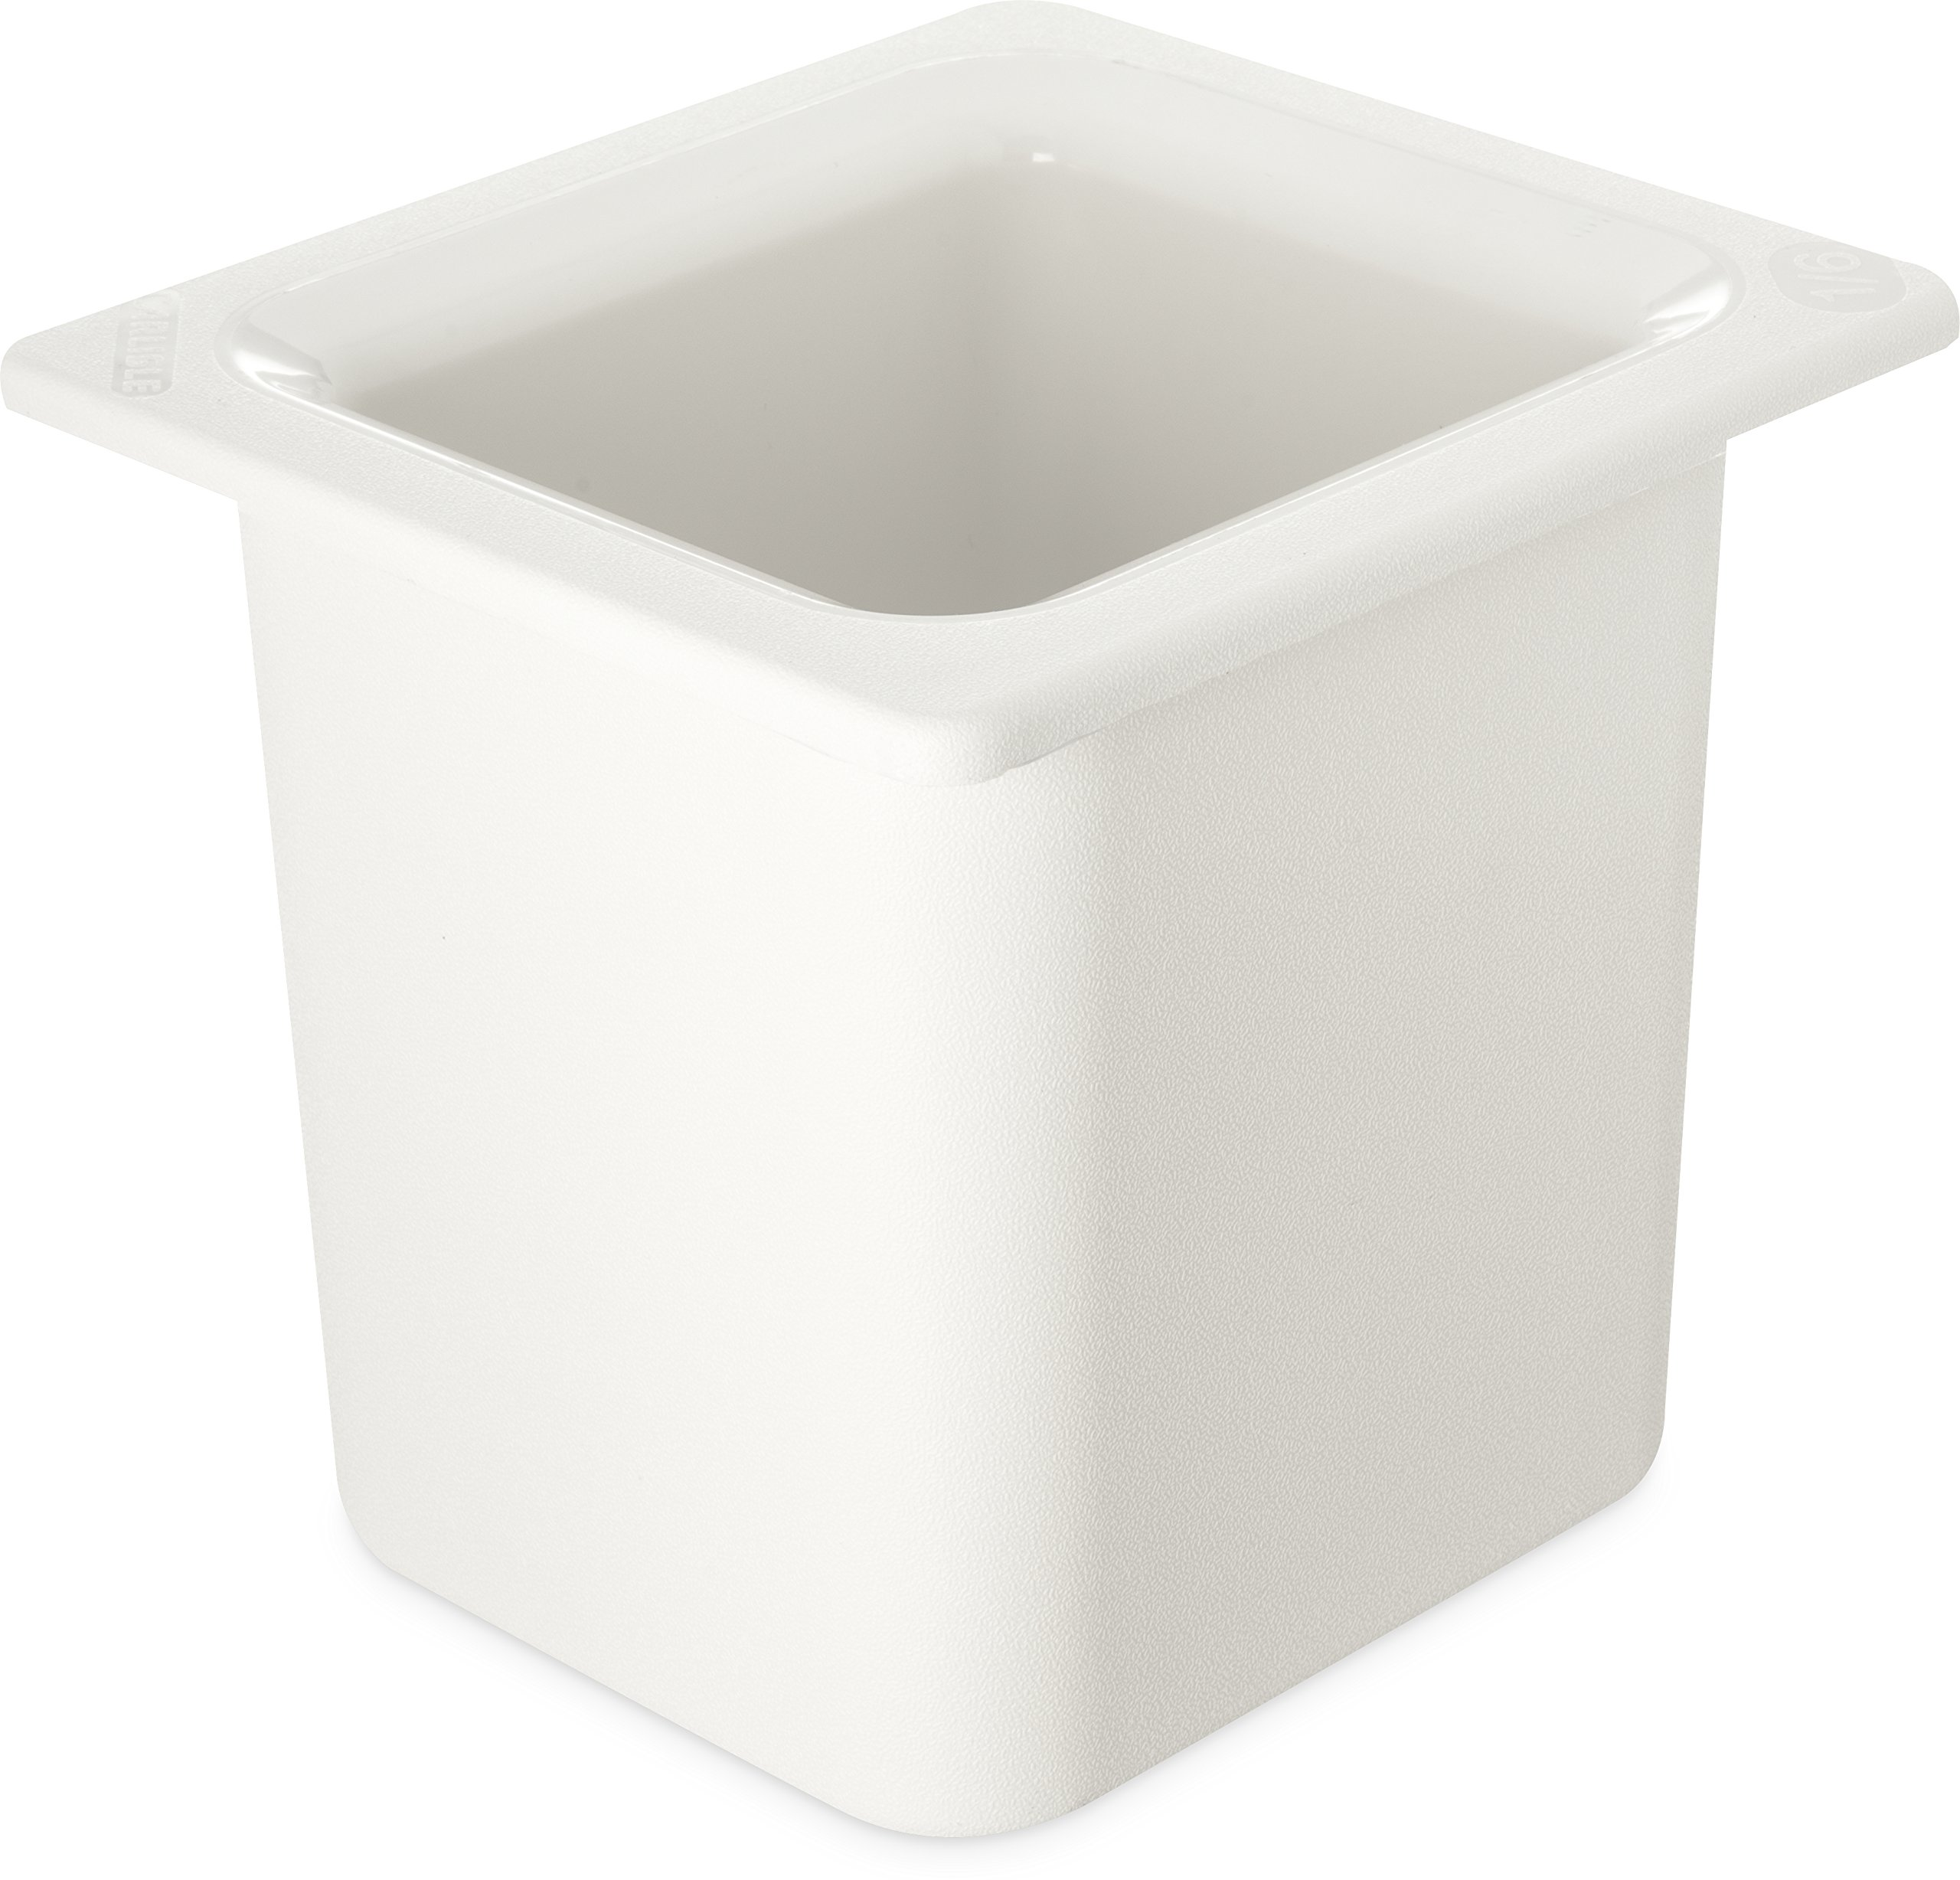 Carlisle CM110502 Coldmaster 6'' Deep Sixth-Size High Capacity Insulated Cold Food Pan, 1.7 Quart, White